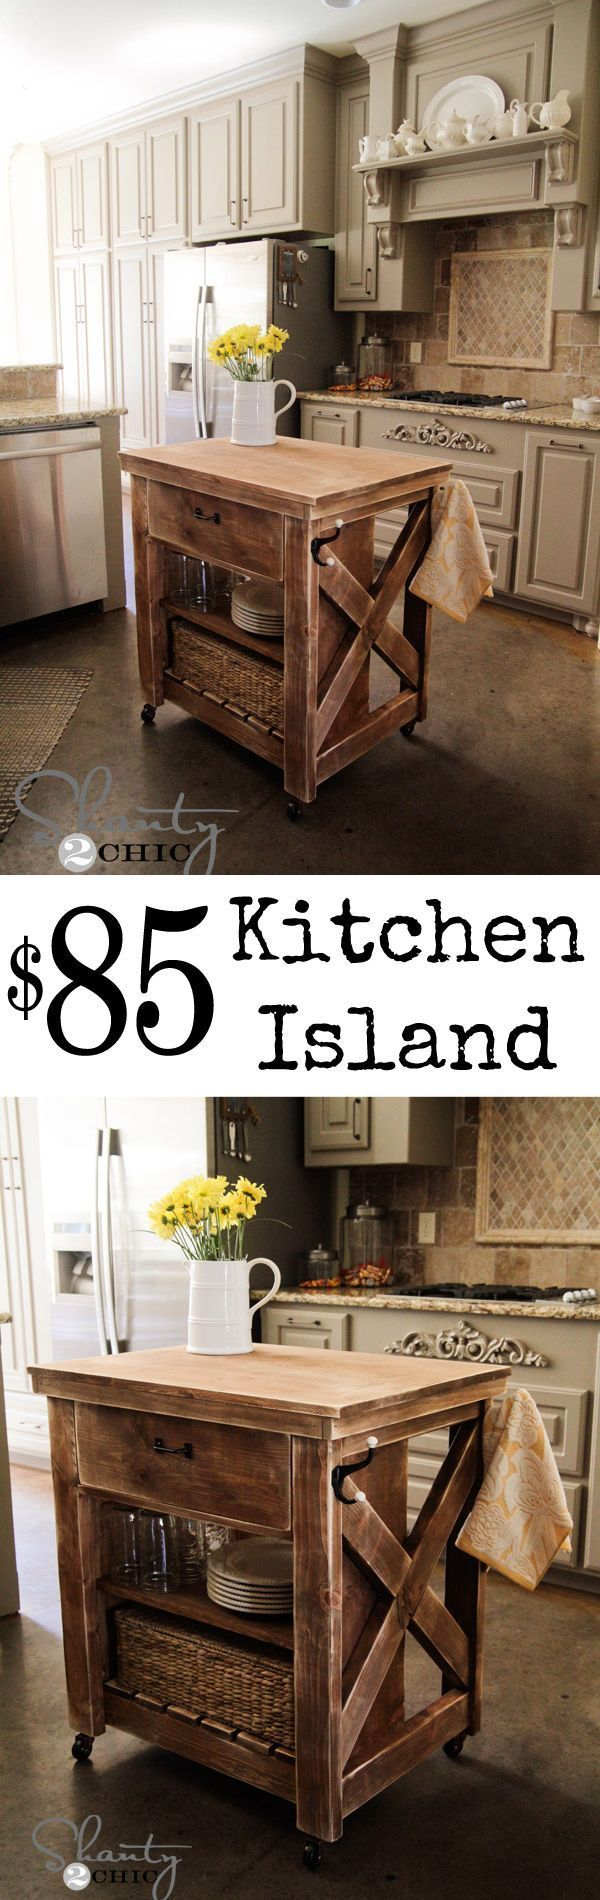 625 Best Images About DIY Furniture On Pinterest Rit Dye